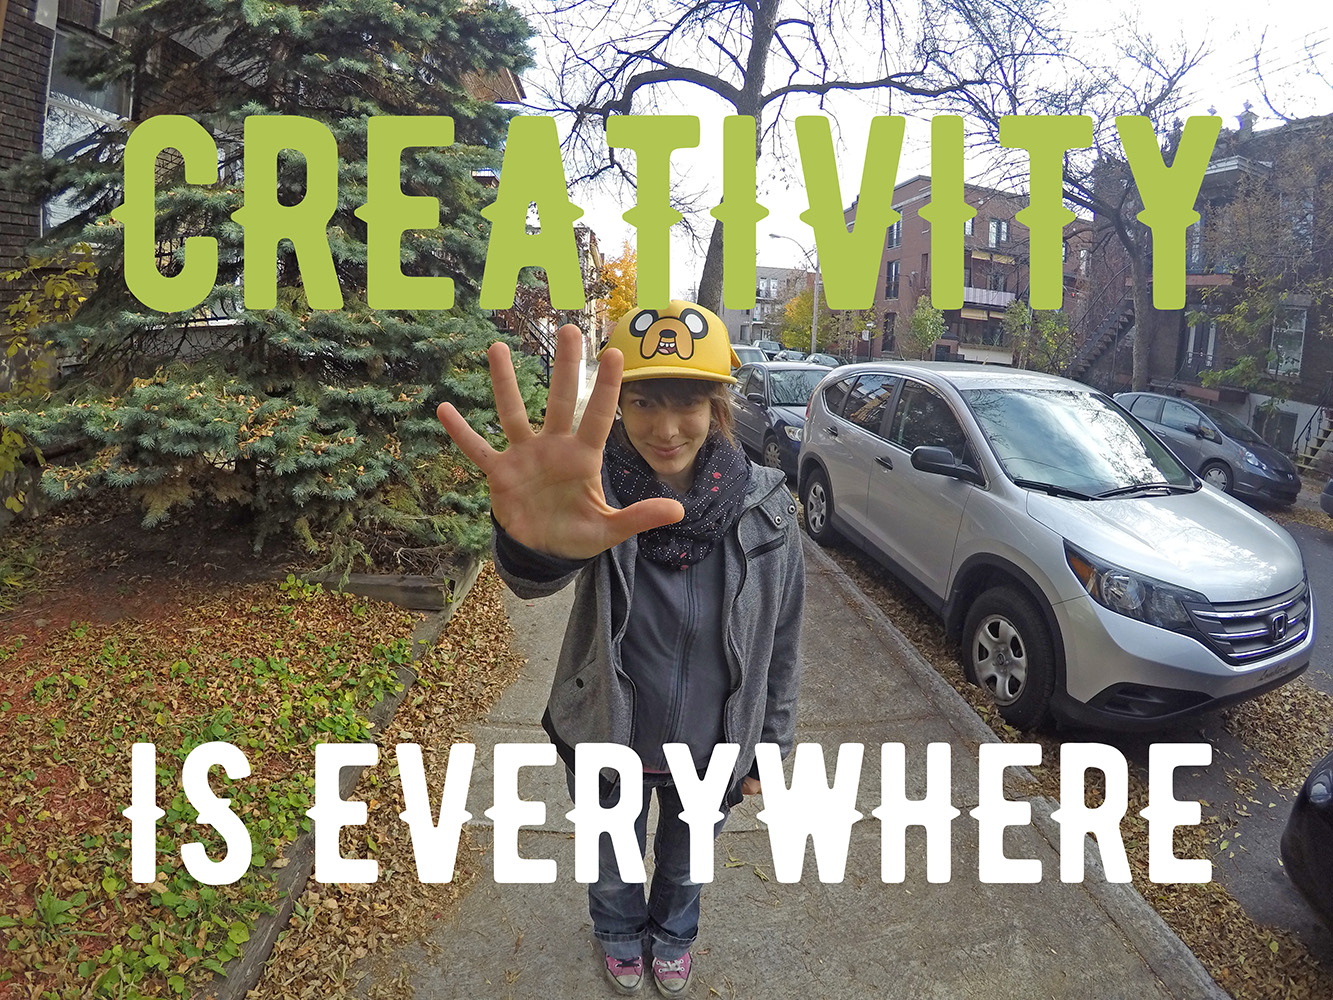 Creativity is everywhere